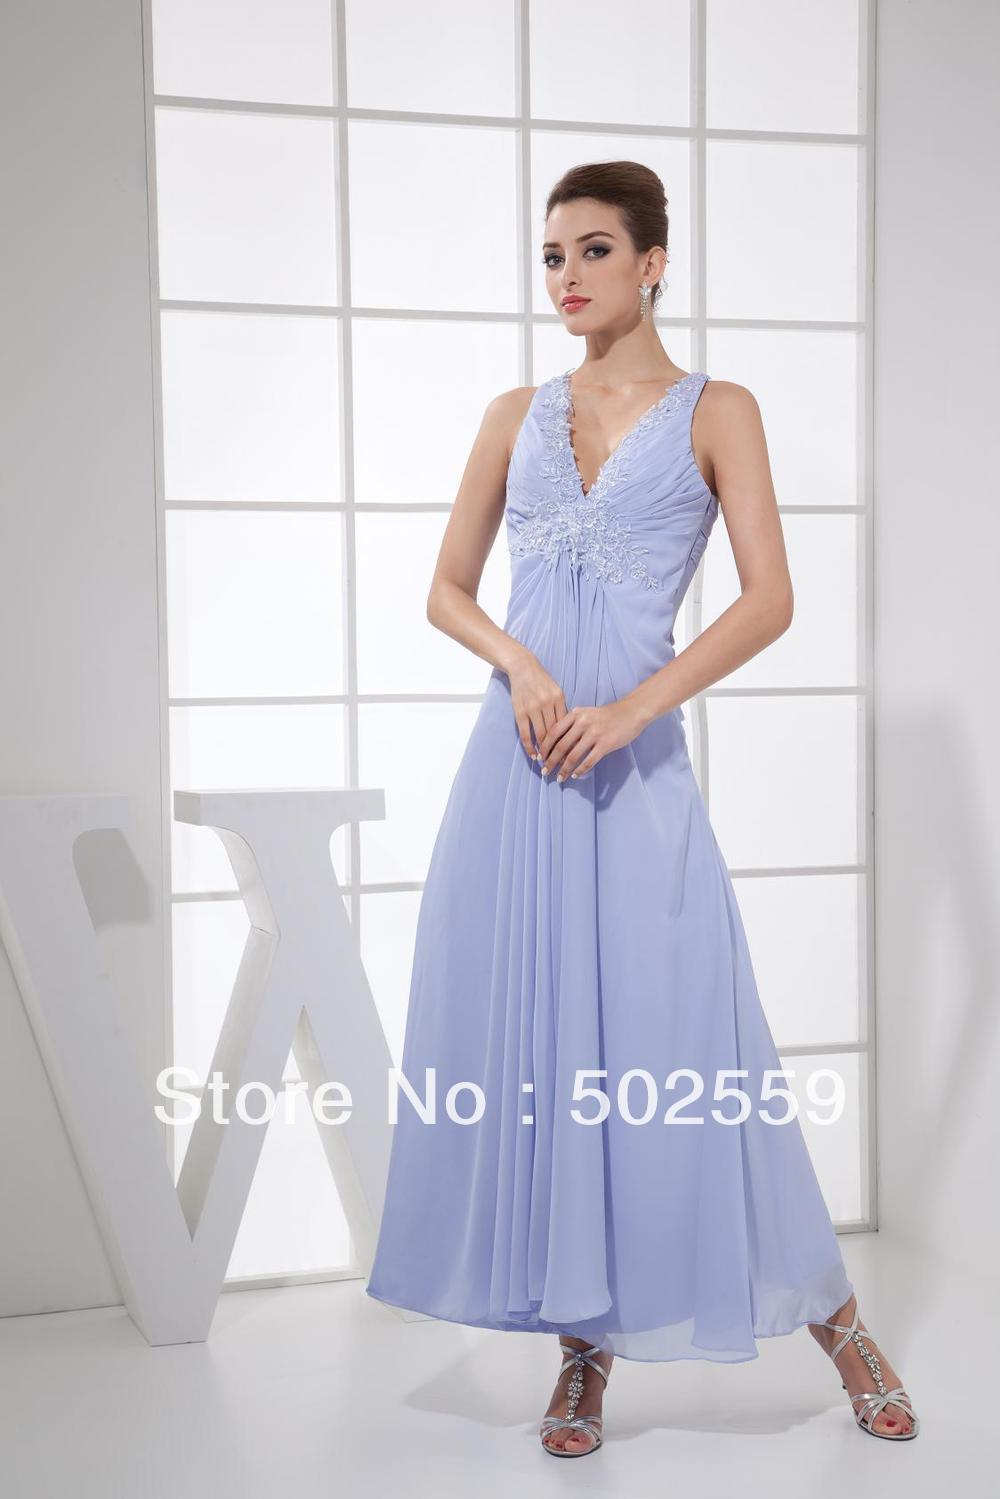 Light purple color sexy design good quality bridesmaid dress a light purple color sexy design good quality bridesmaid dress a line hot sale oem freeshipping wd2 012 in bridesmaid dresses from weddings events on ombrellifo Gallery